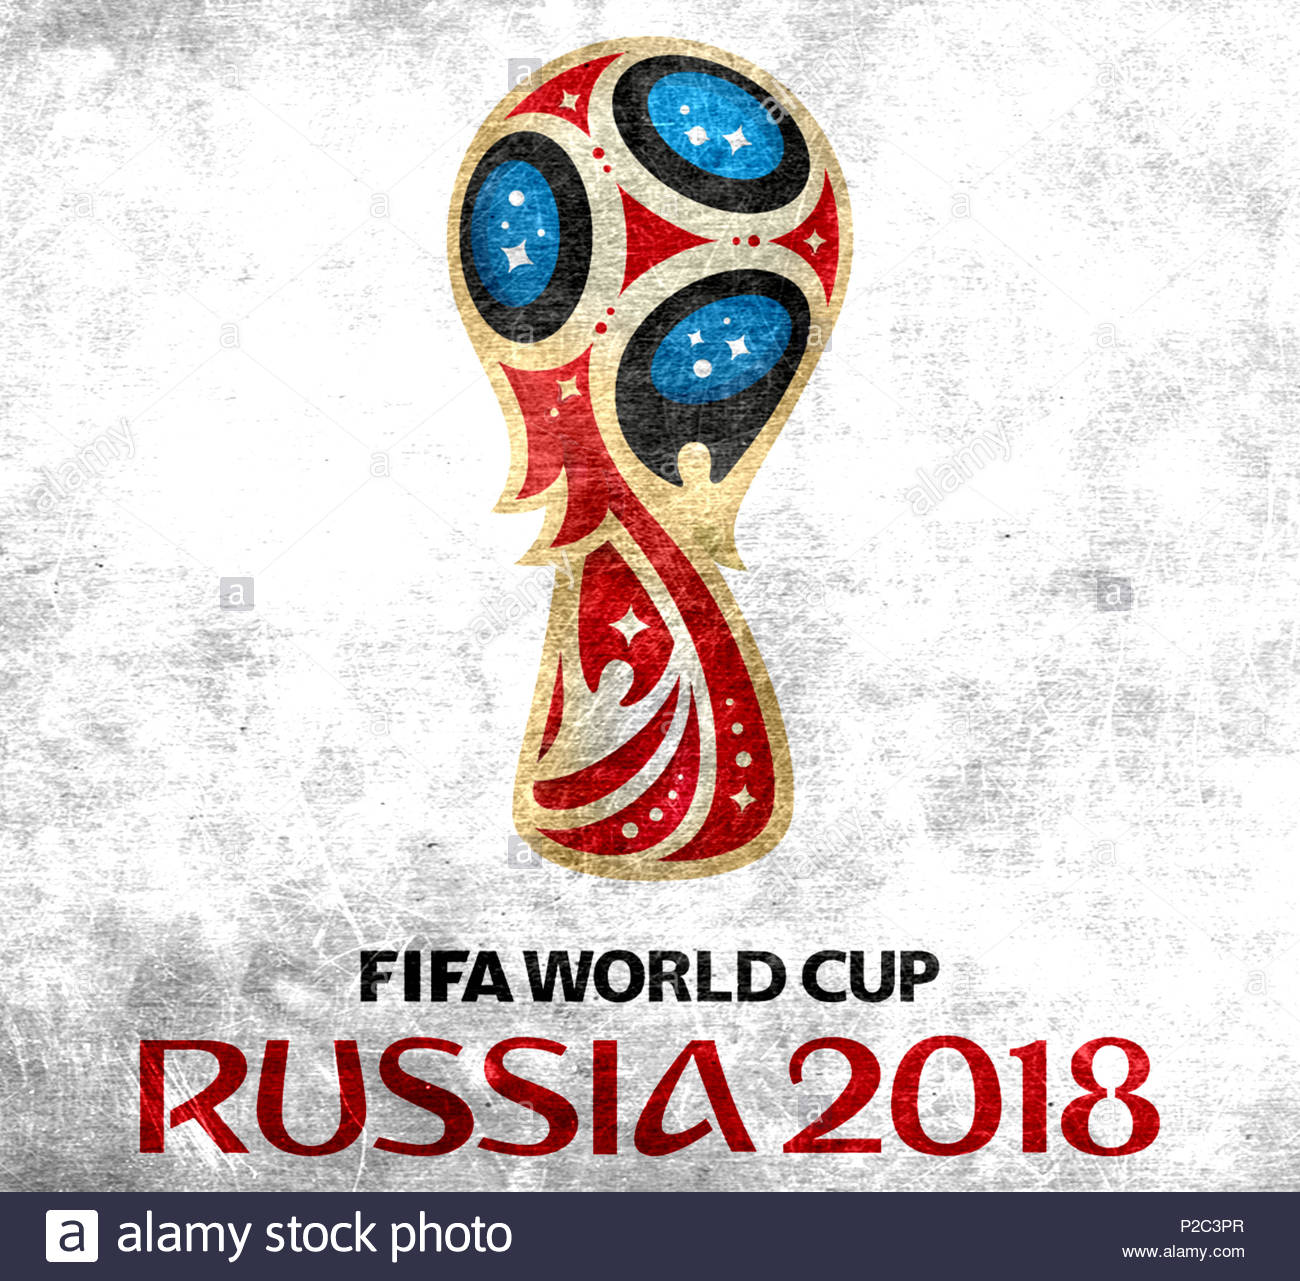 FIFA World Cup 2018 in Russia logo - Stock Image